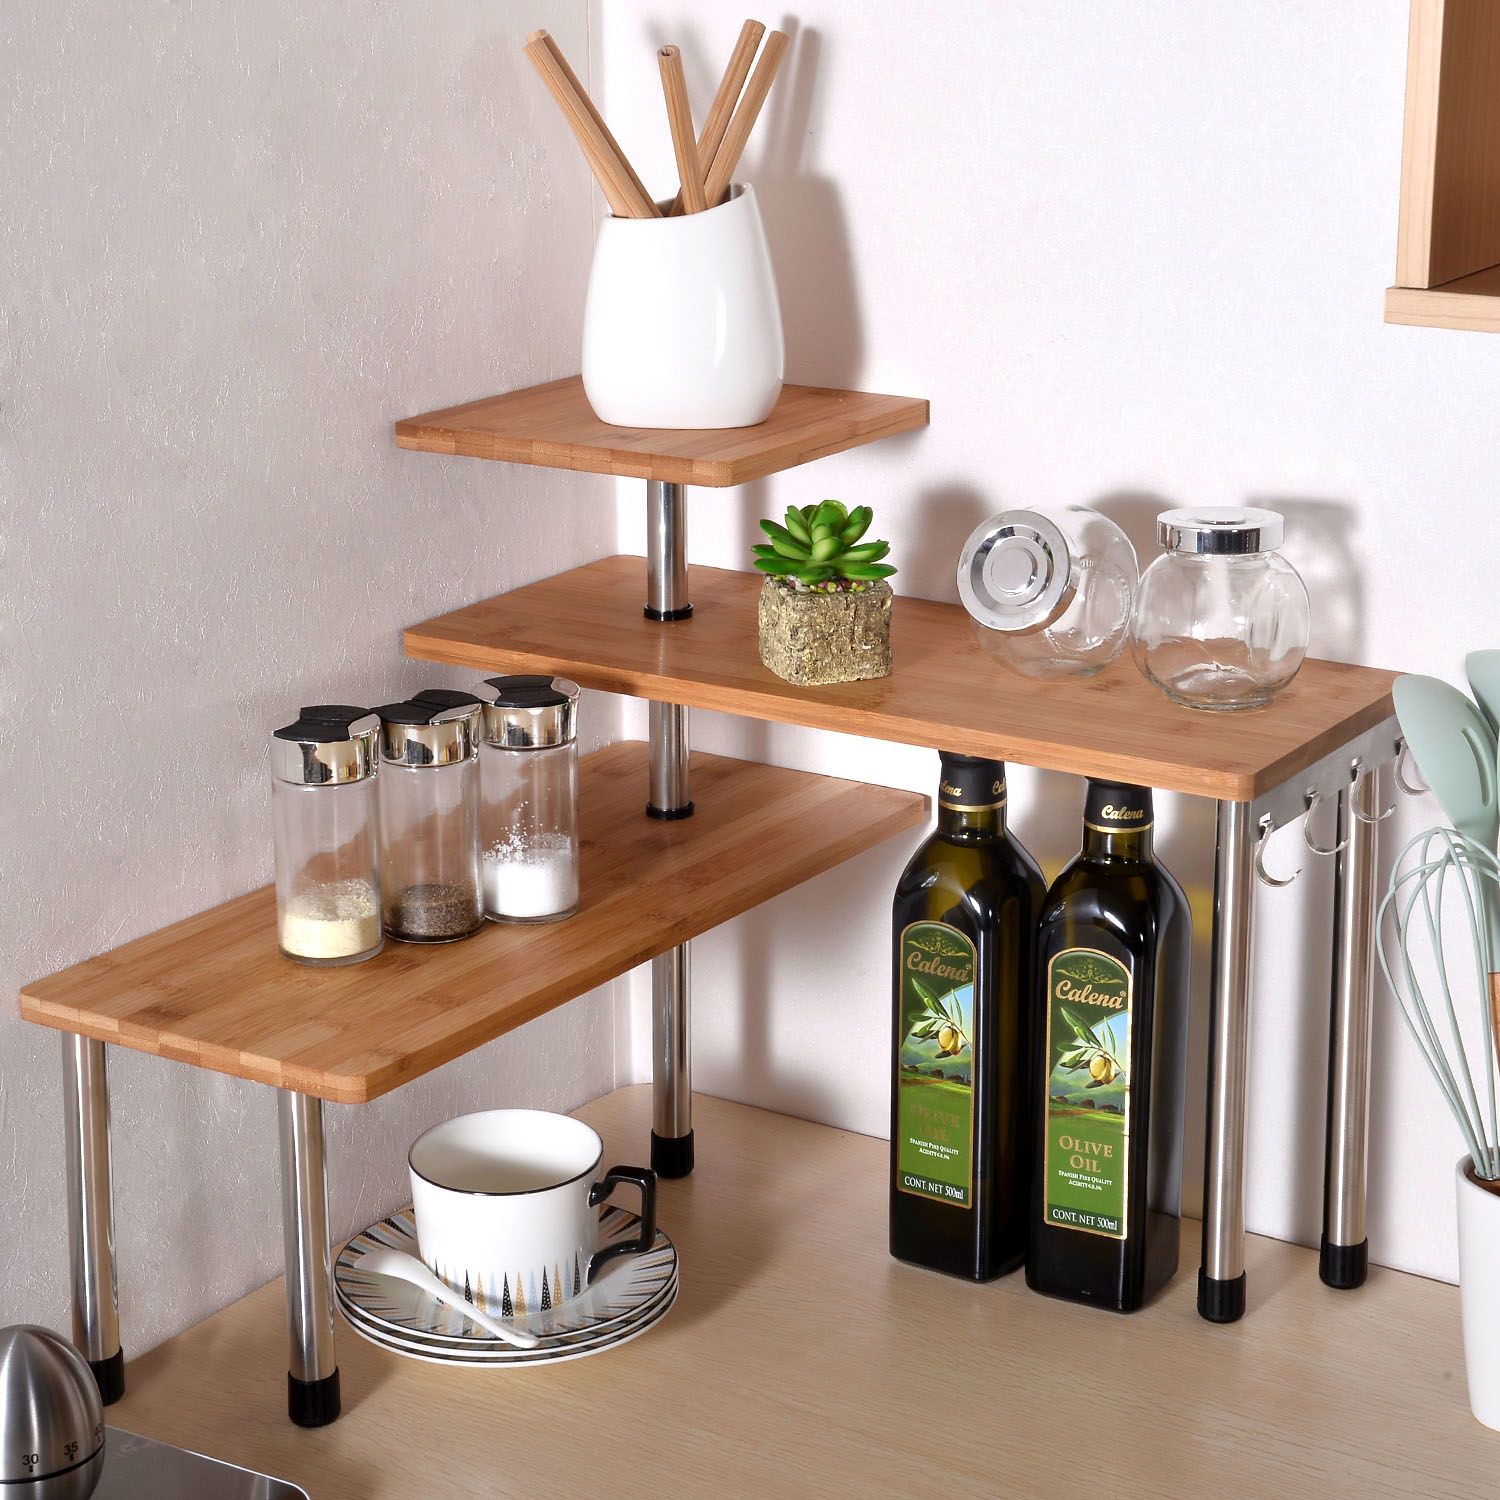 Decorative wooden shelving for the kitchen